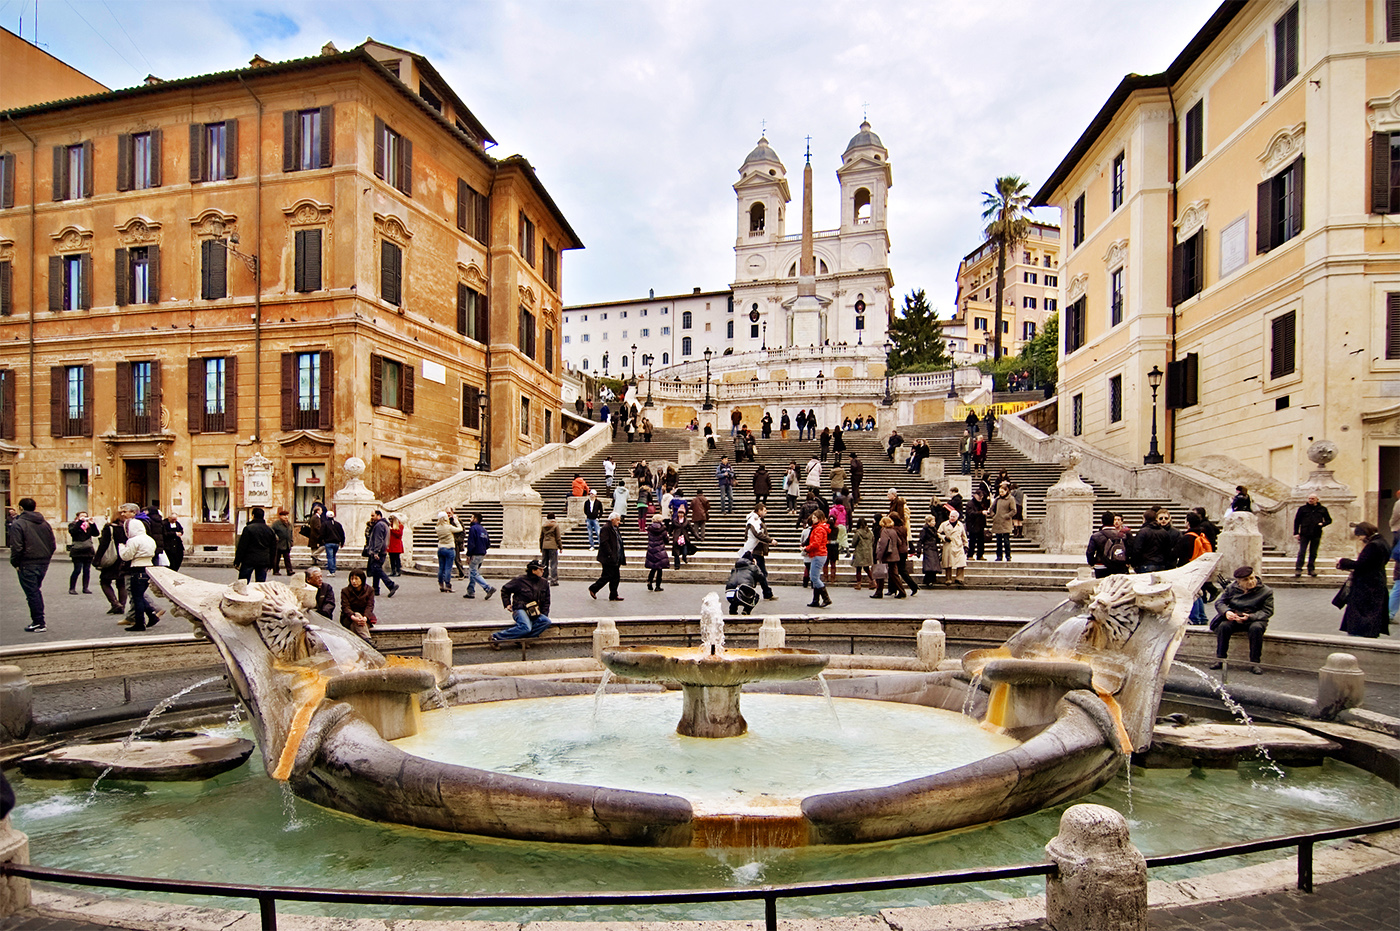 Piazza di Spagna with the famous fountain of la Barcaccia and the steps of Trinità di Monti